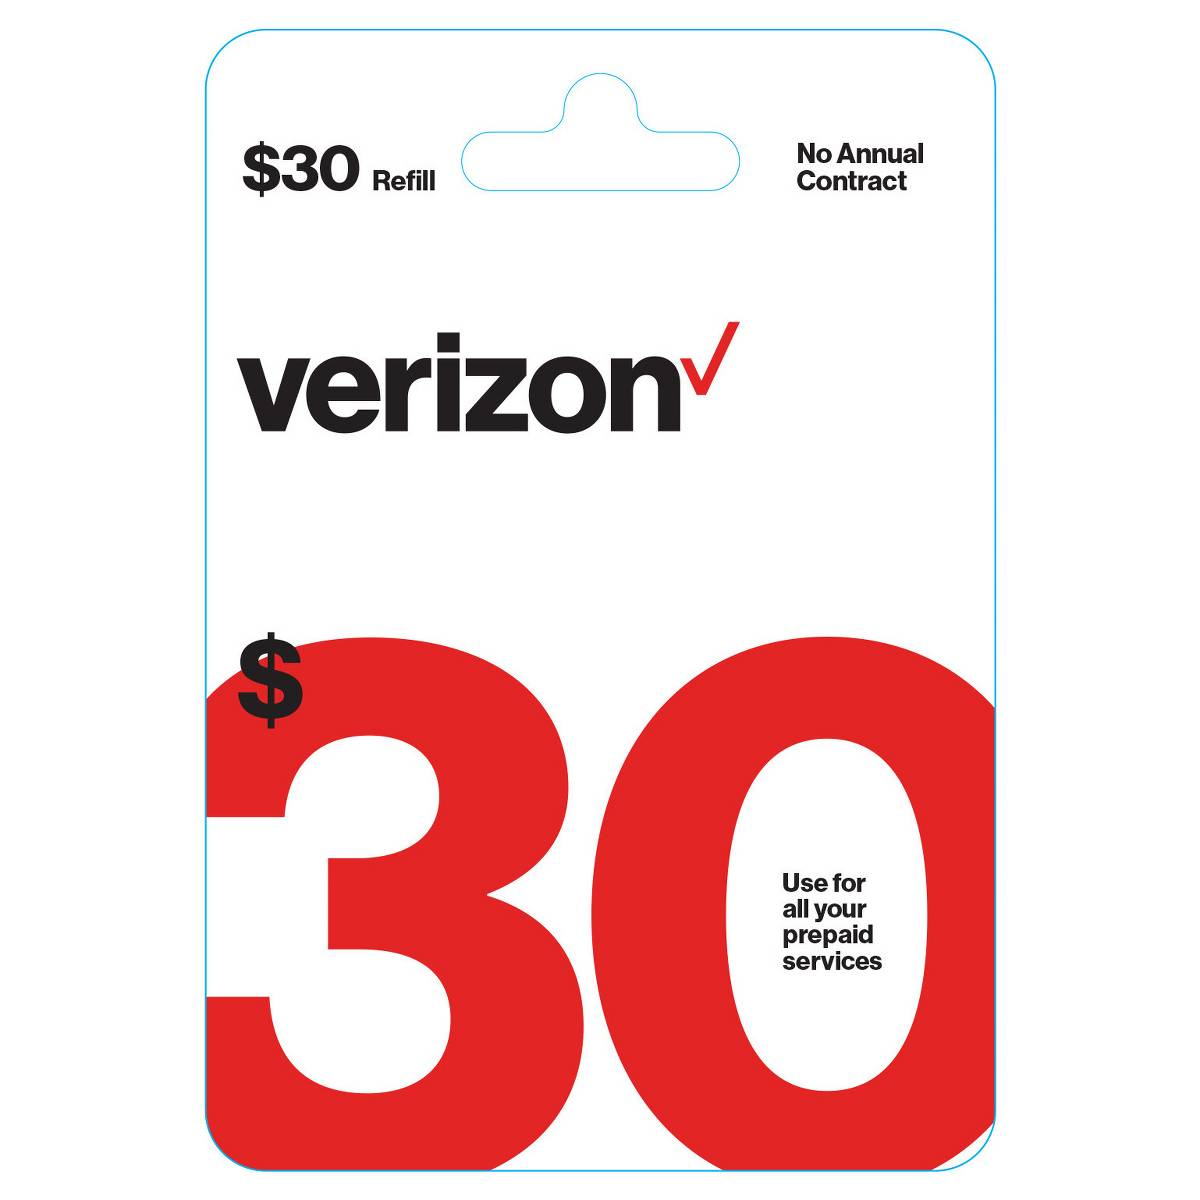 Buy 1 Get 1 20% Off Verizon Wireless Prepaid Refill Cards: 2x $30 Cards $54 (Email Delivery) & More